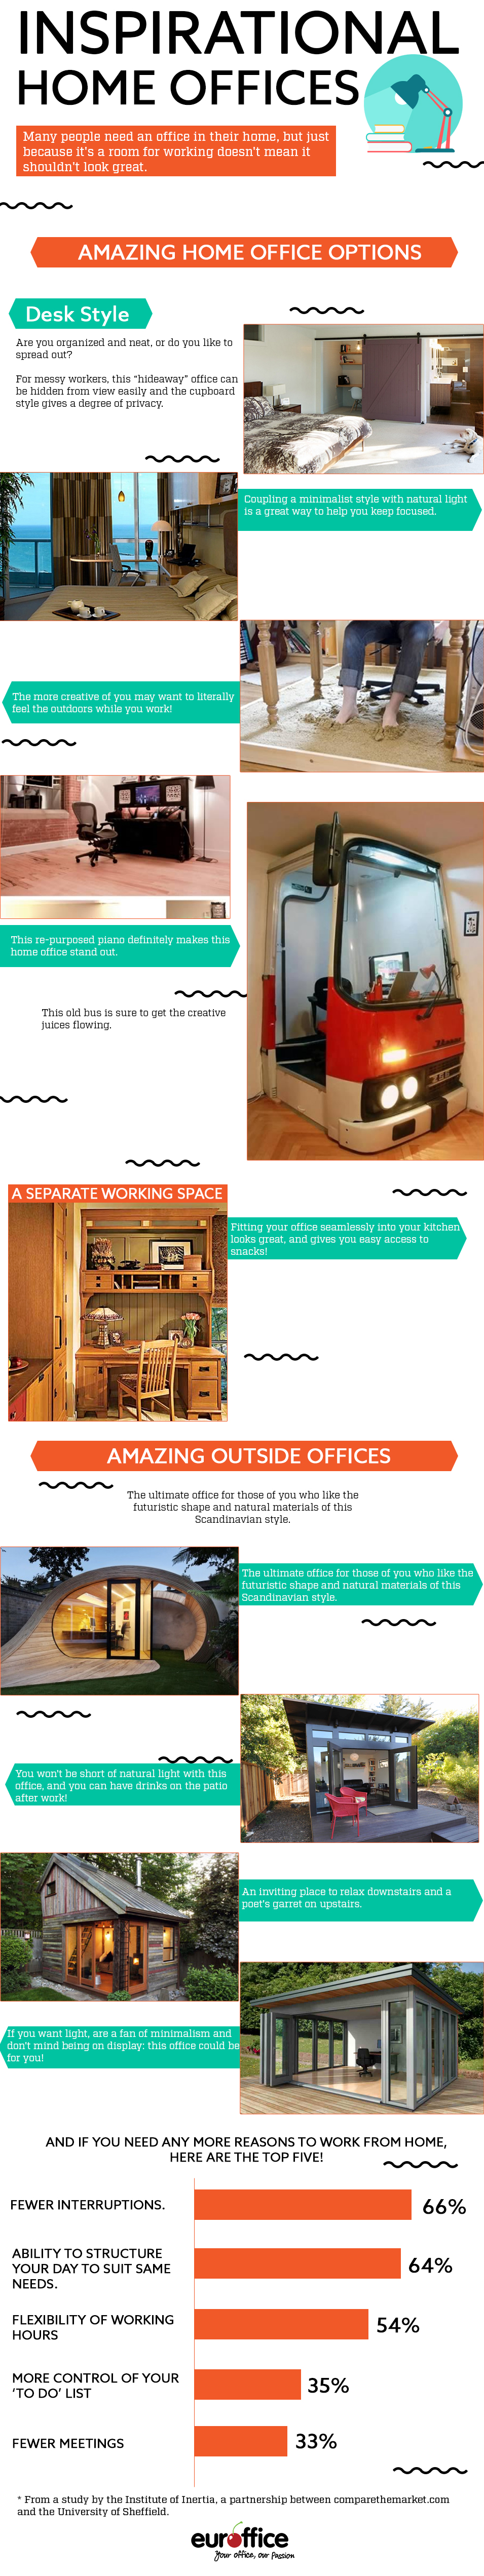 Creating a Stylish Home Office [Infographic]